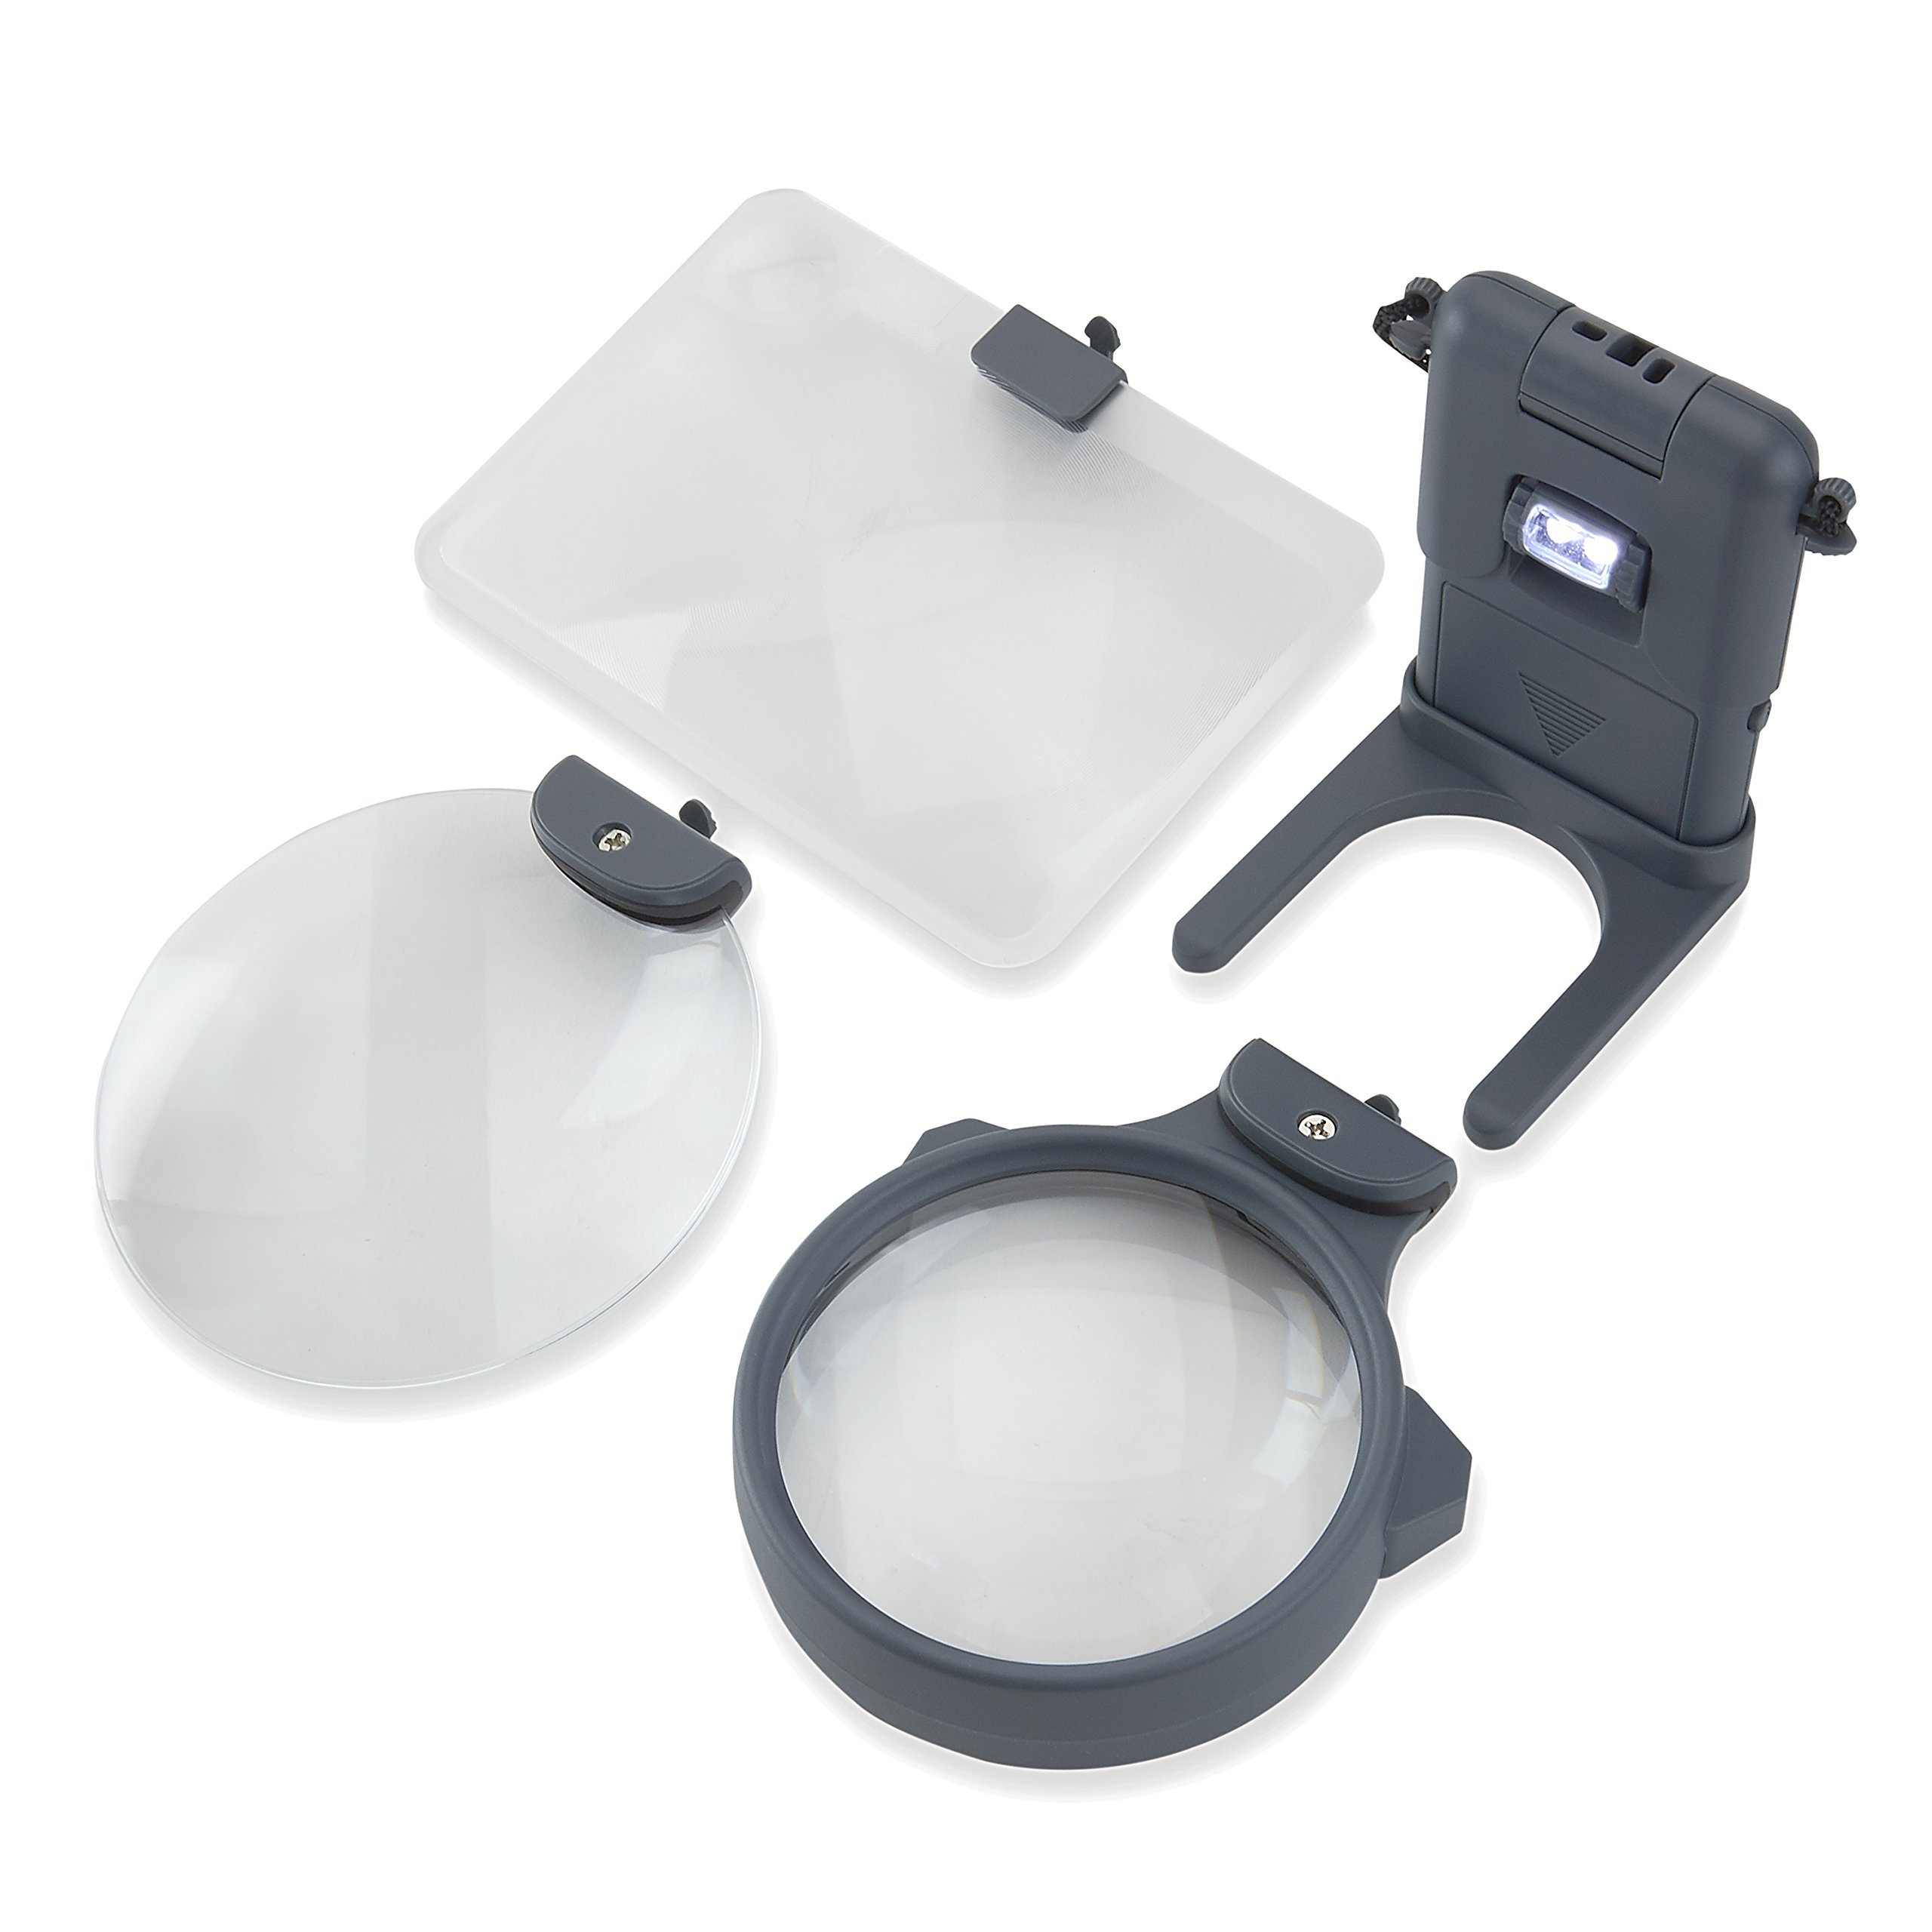 Carson 3-in-1 LED Lighted Magnifying Glass (HM-30) by Carson (Image #4)